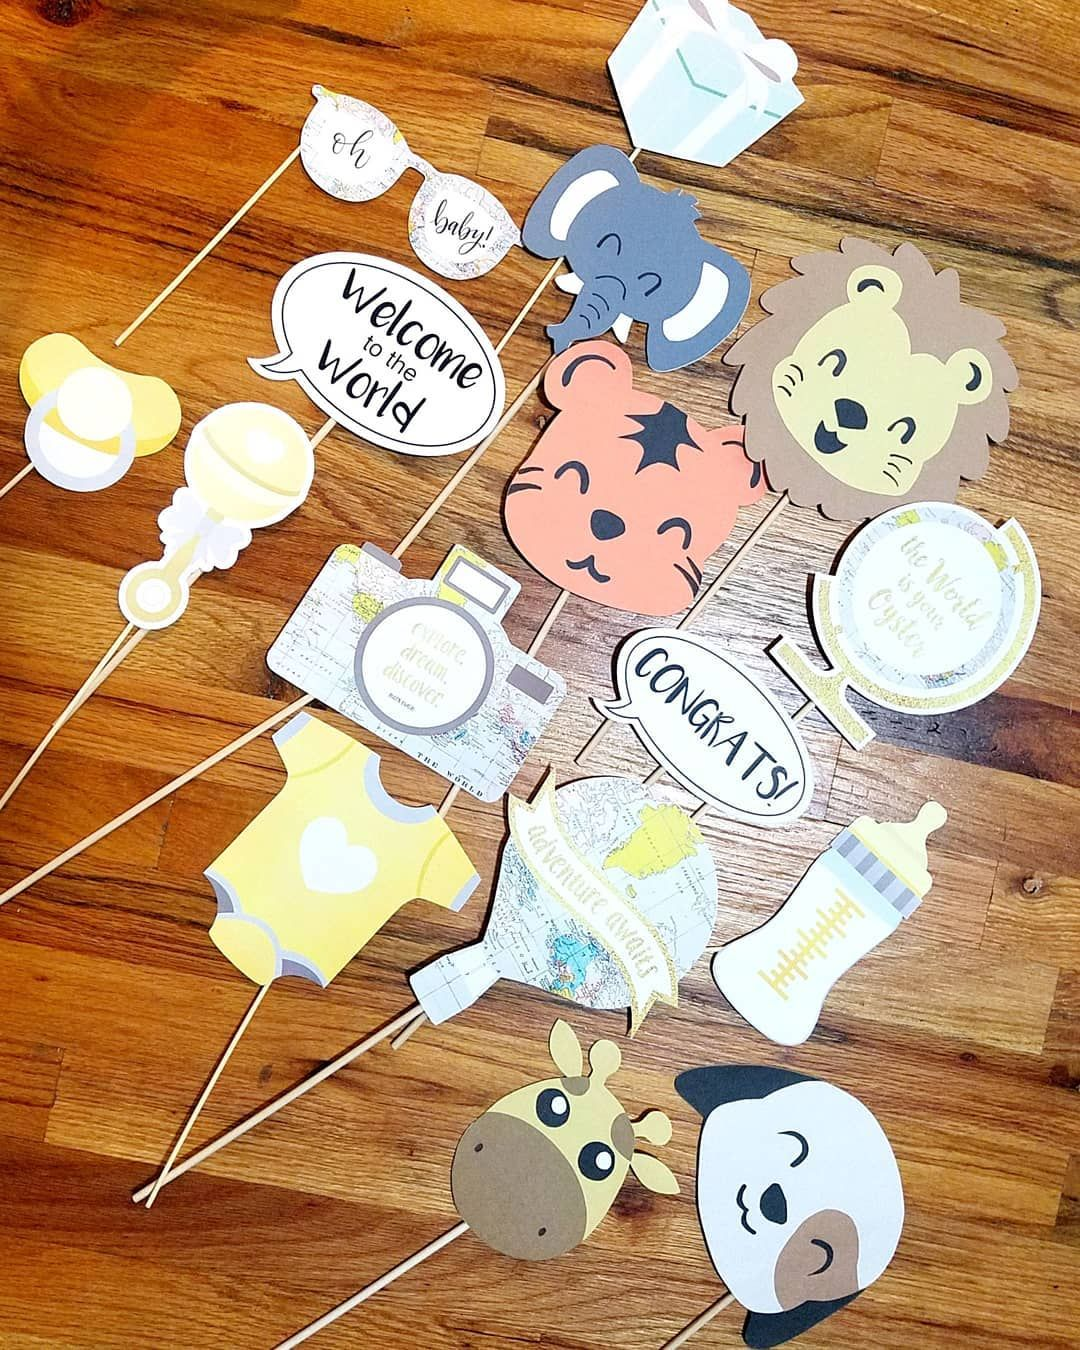 Look At These Cute Baby Shower Photo Booth Props I Made For My Best Friend S B Baby Shower Photo Booth Props Baby Shower Cards Handmade Baby Shower Photo Booth